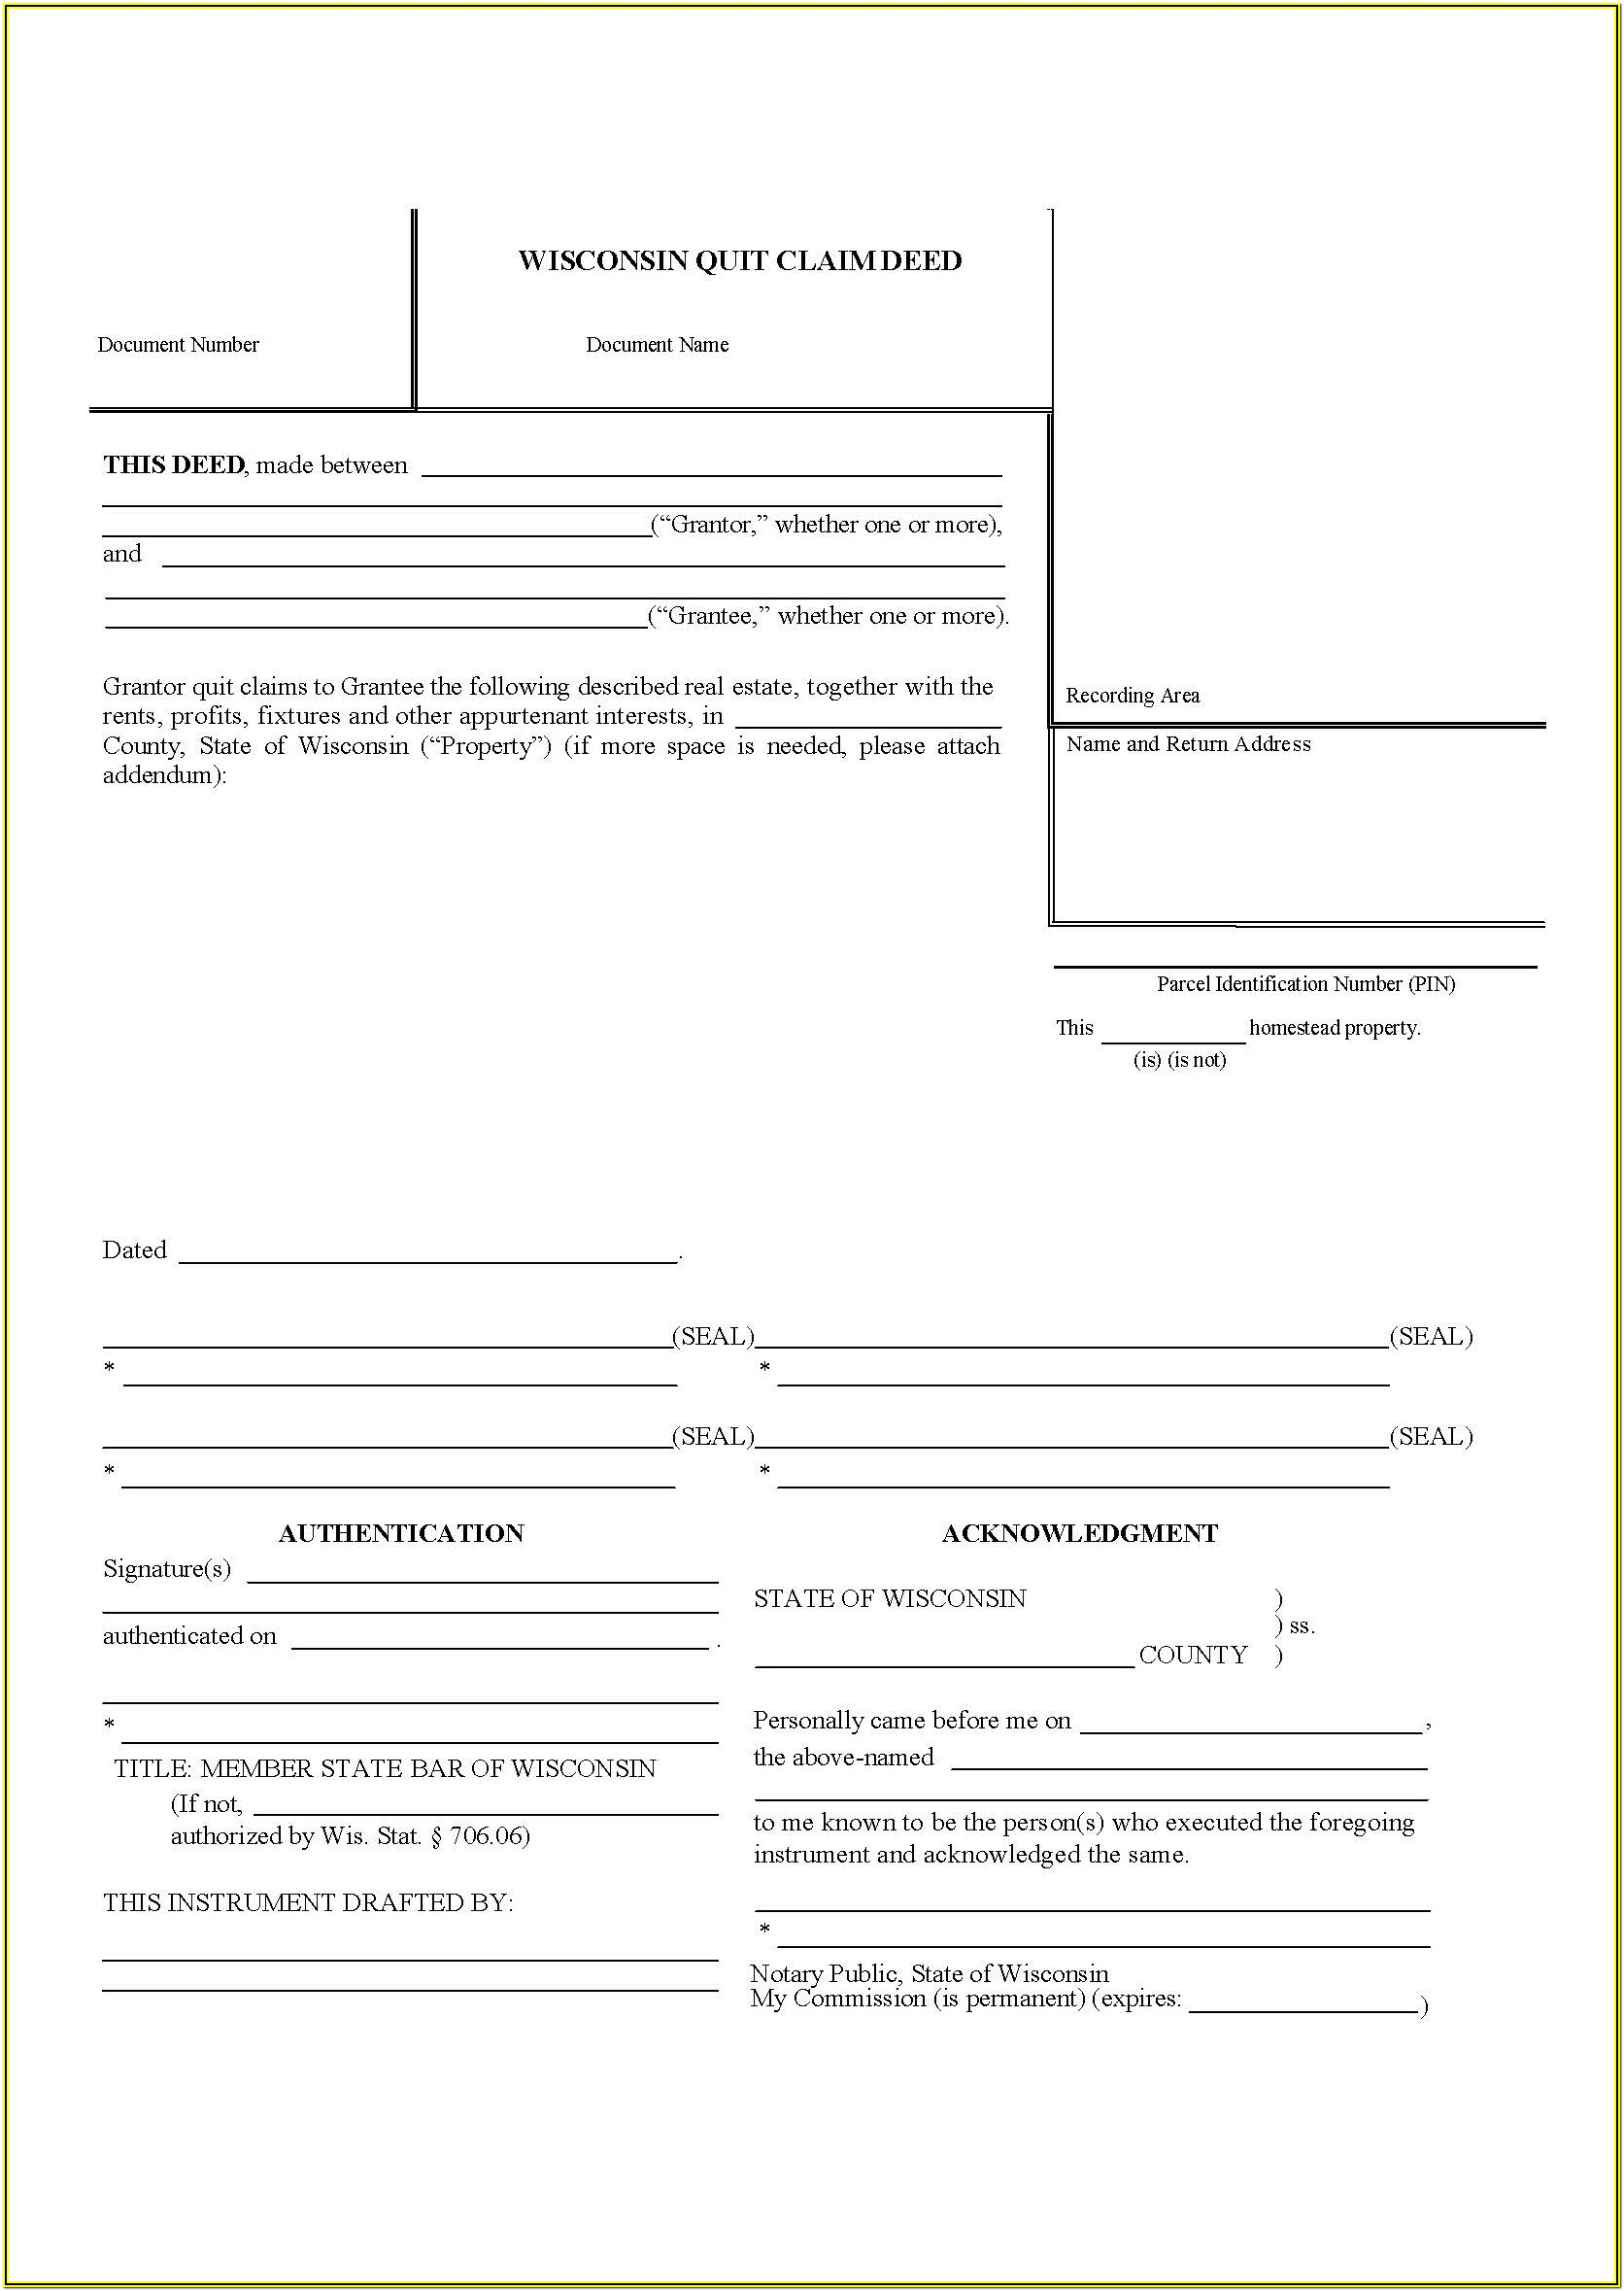 Quit Claim Deed Fillable Form Wisconsin